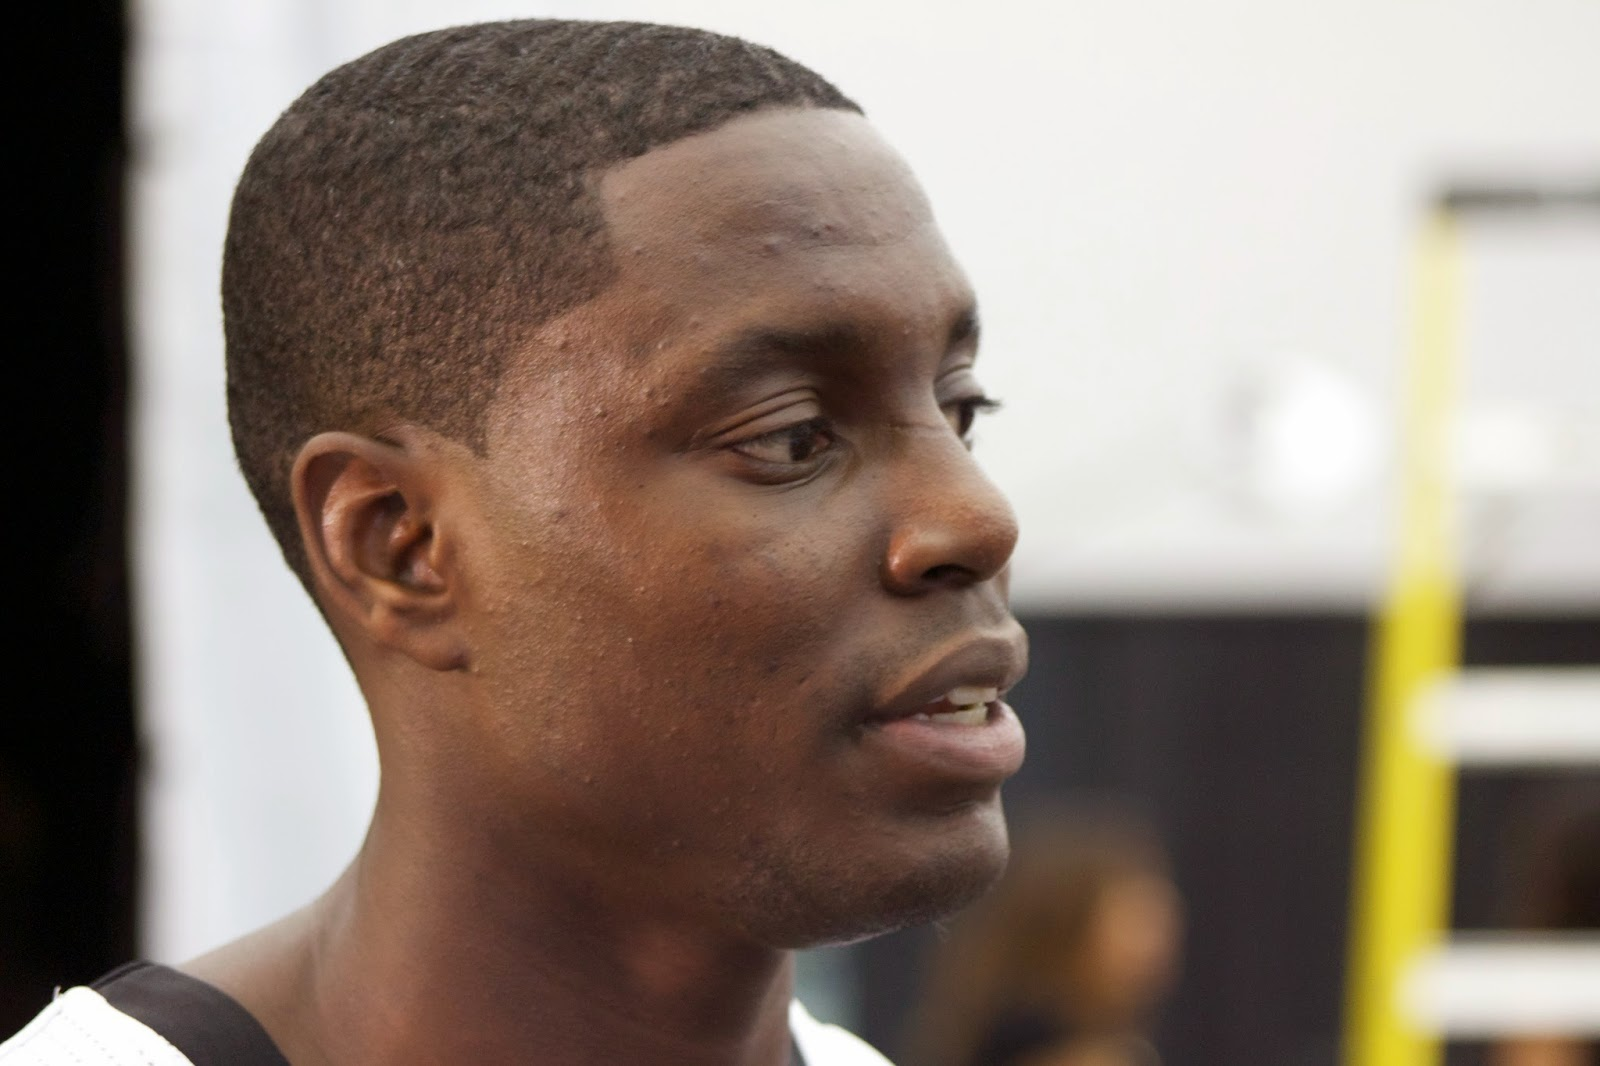 Darren Collison making his point, changing culture